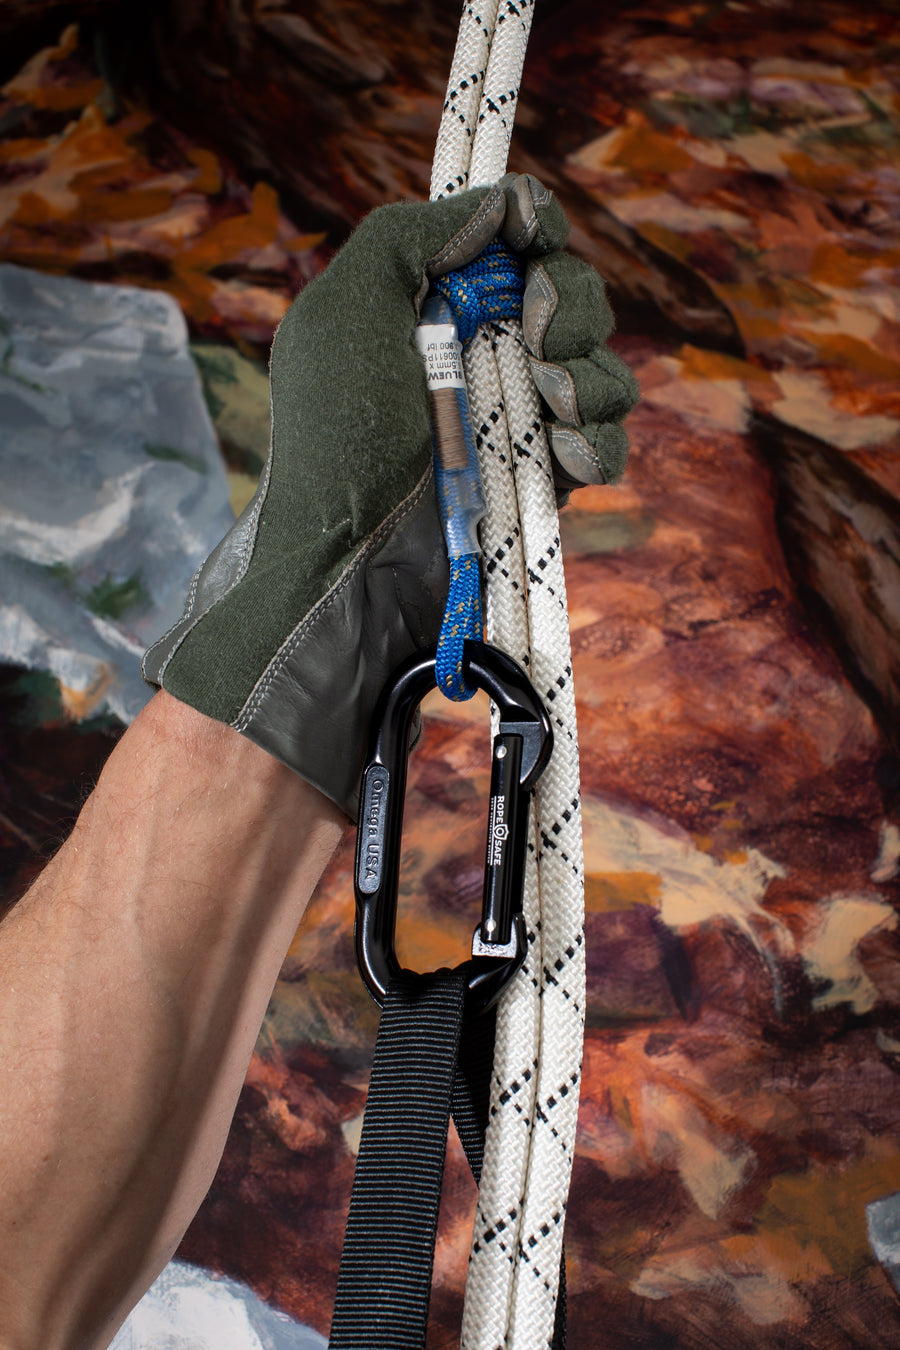 RopeSafe rope edge protection custom bound prusik cord for use with other rope safety equipment.